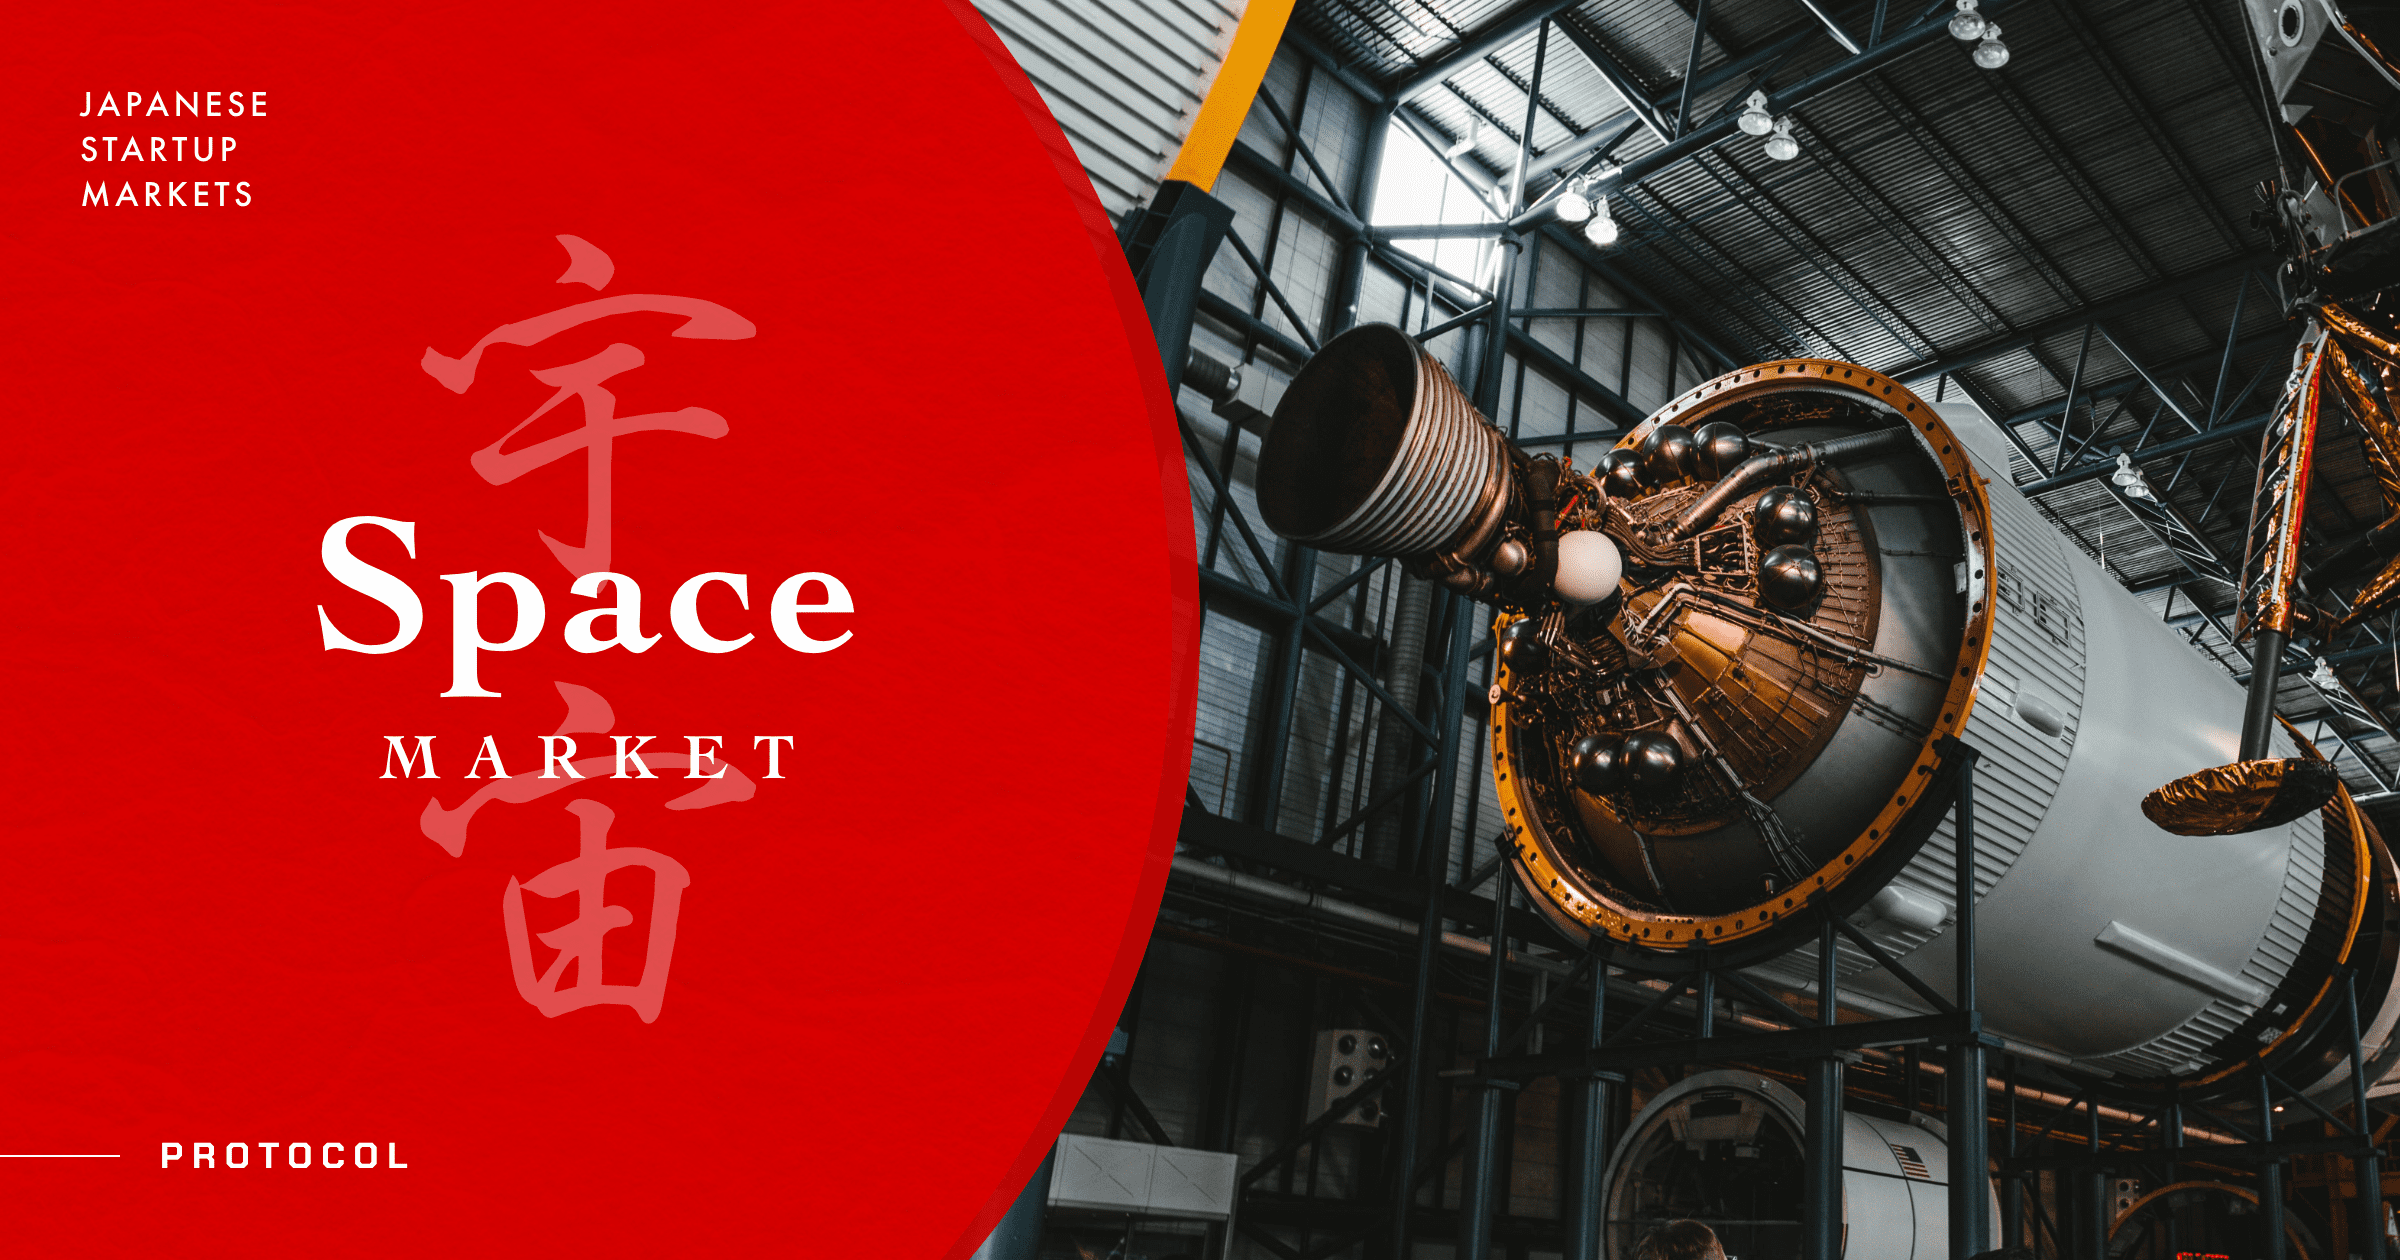 Japanese Startup Markets: Space Industry